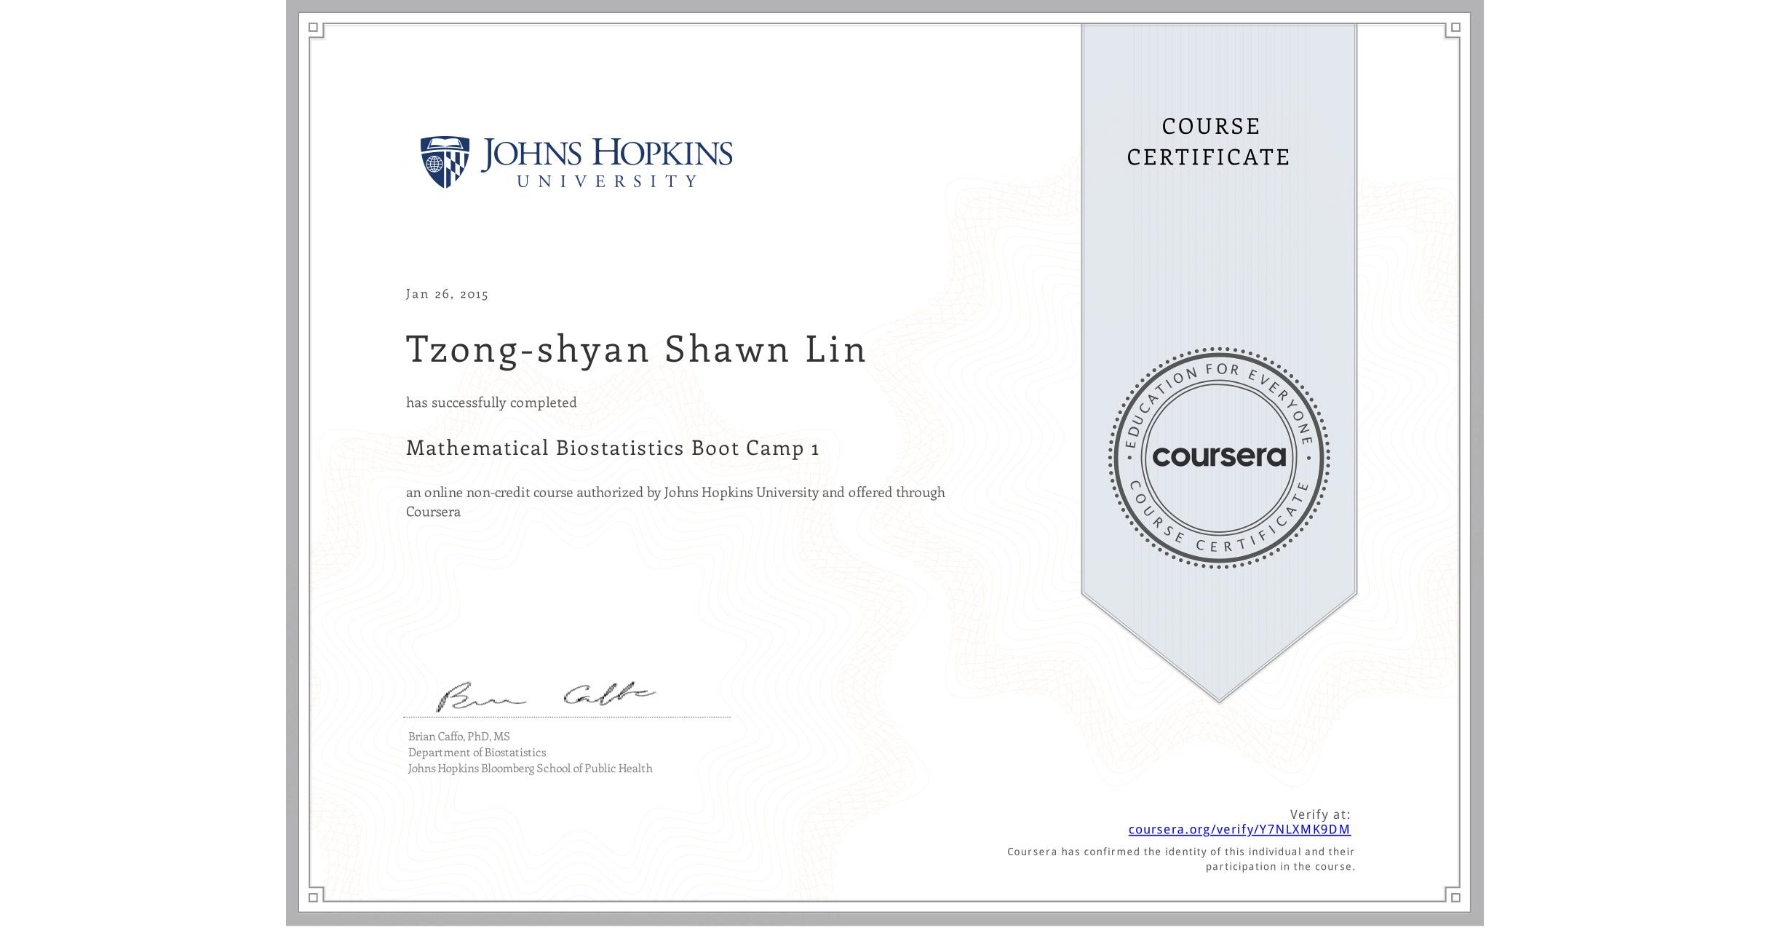 View certificate for Tzong-shyan Shawn Lin, Mathematical Biostatistics Boot Camp 1, an online non-credit course authorized by Johns Hopkins University and offered through Coursera